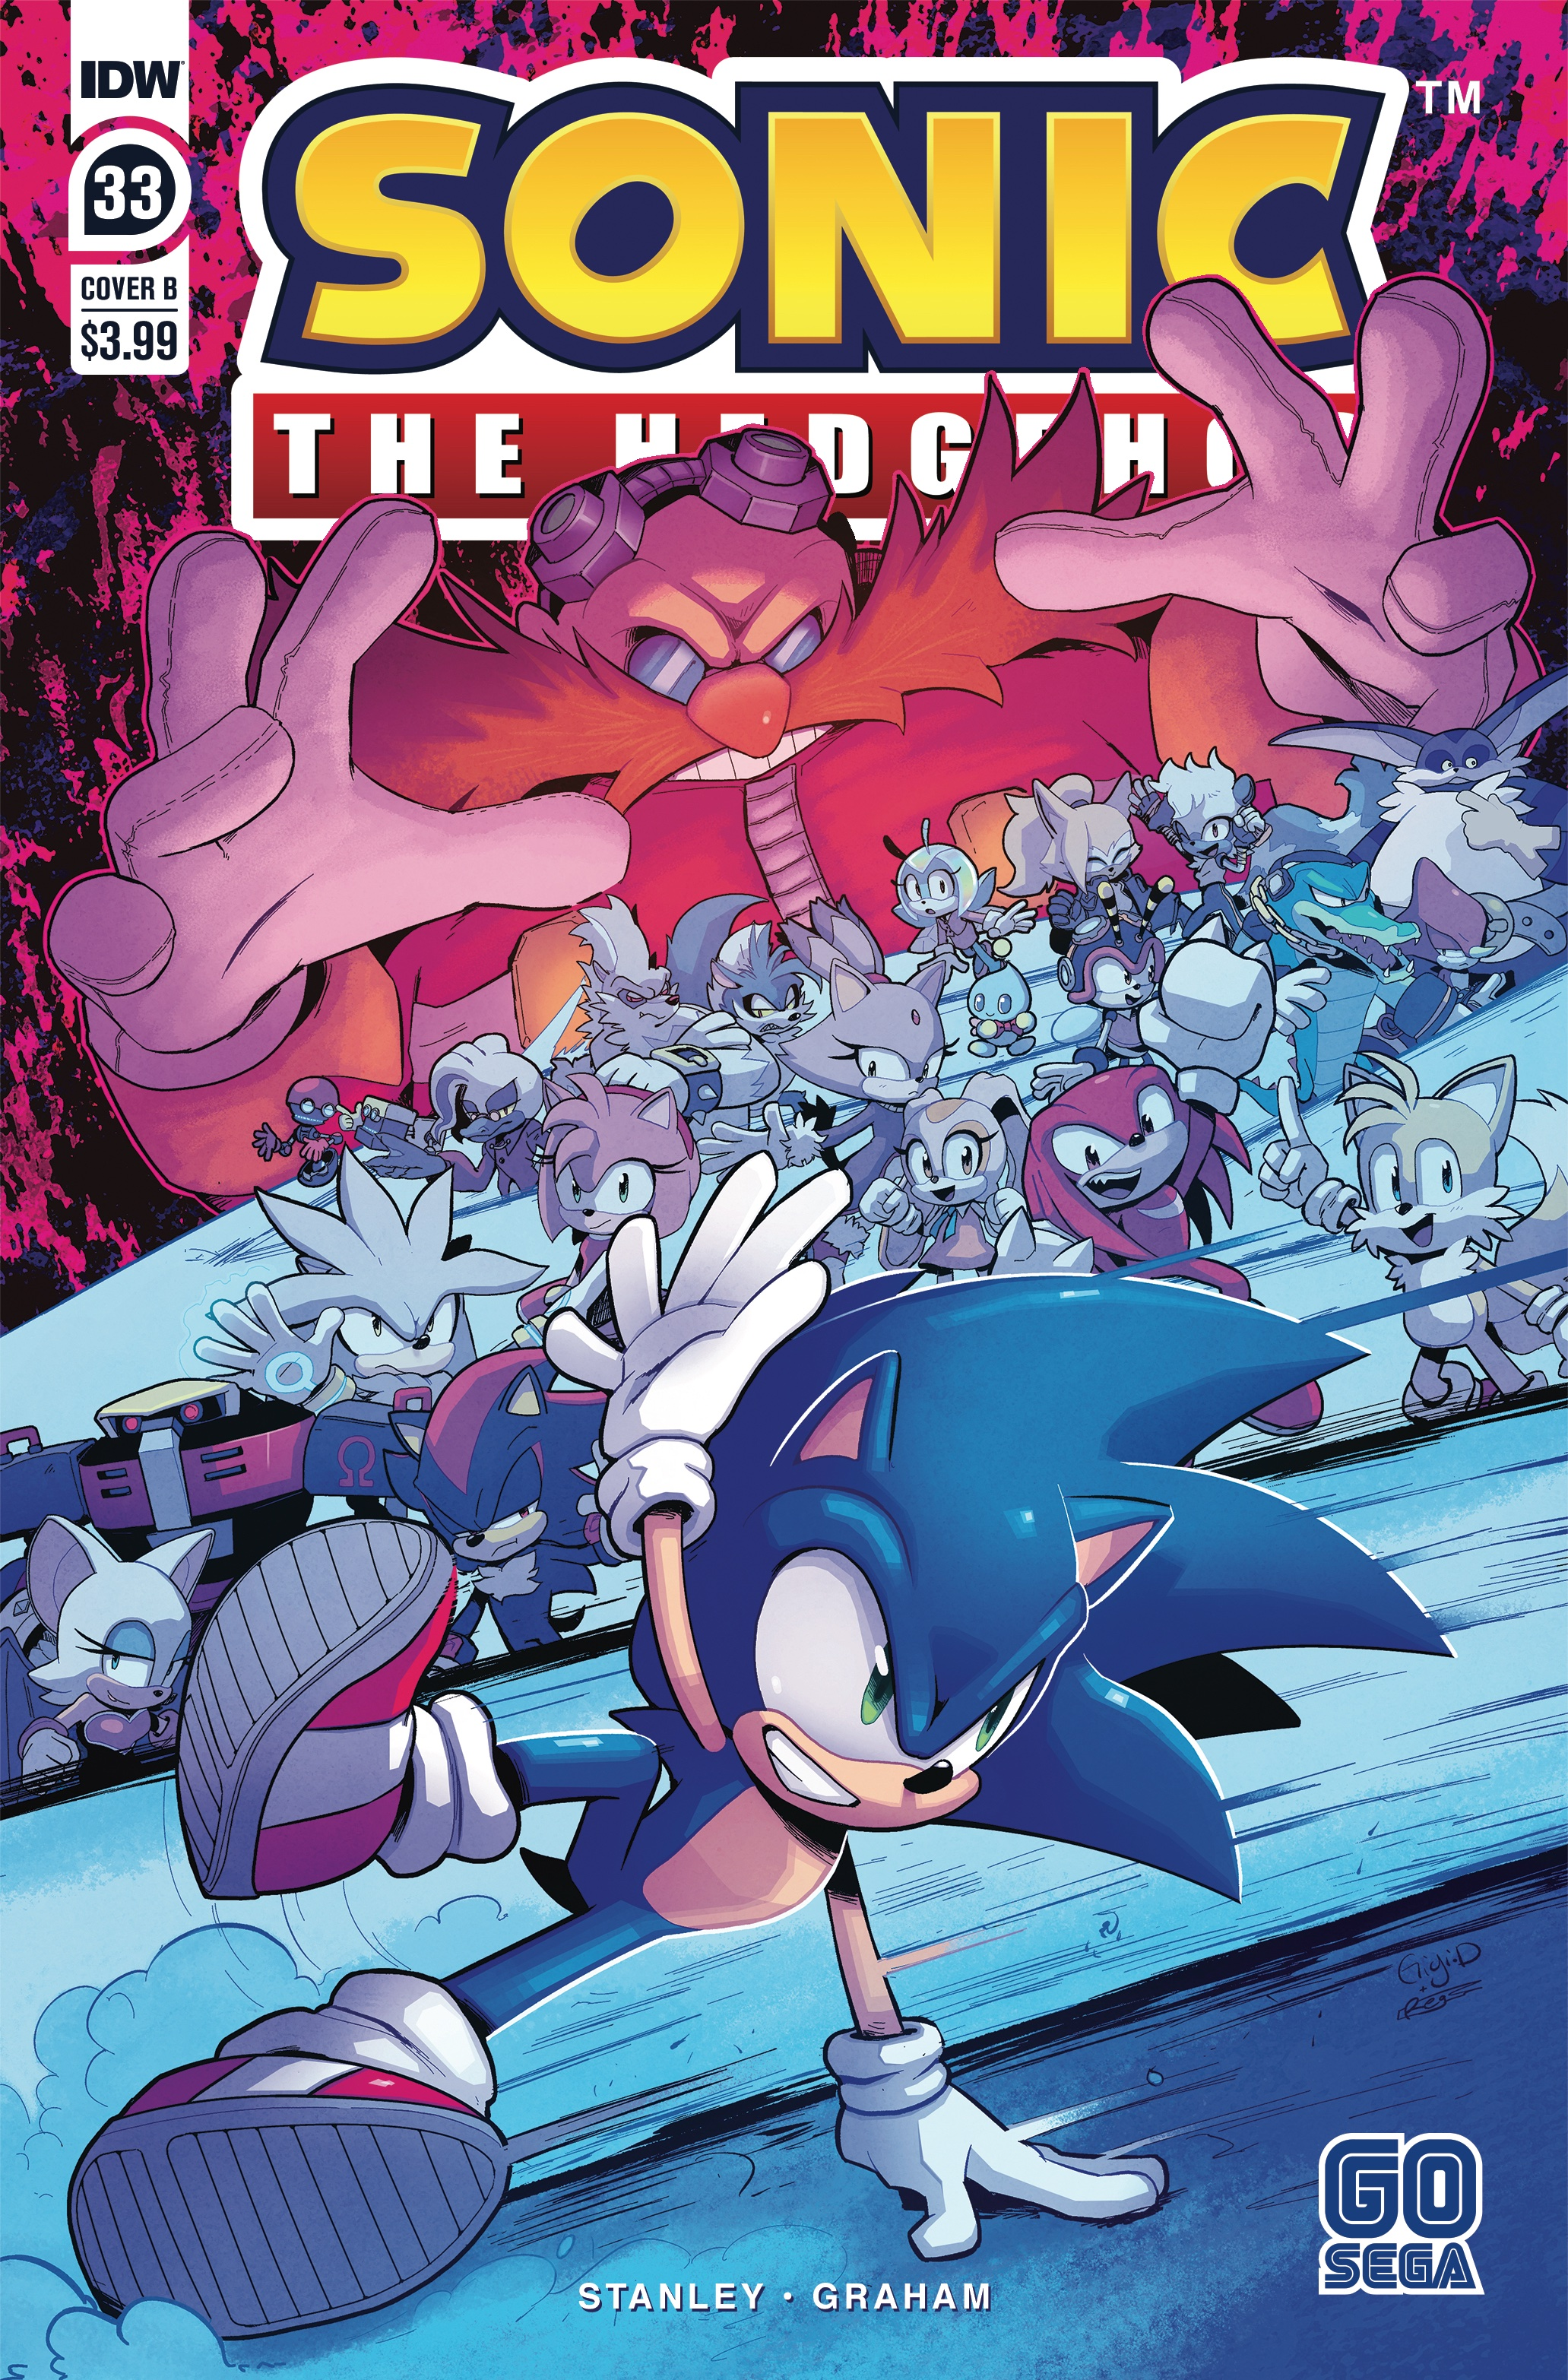 Idw Sonic The Hedgehog Issue 33 Idw Sonic Hub Fandom